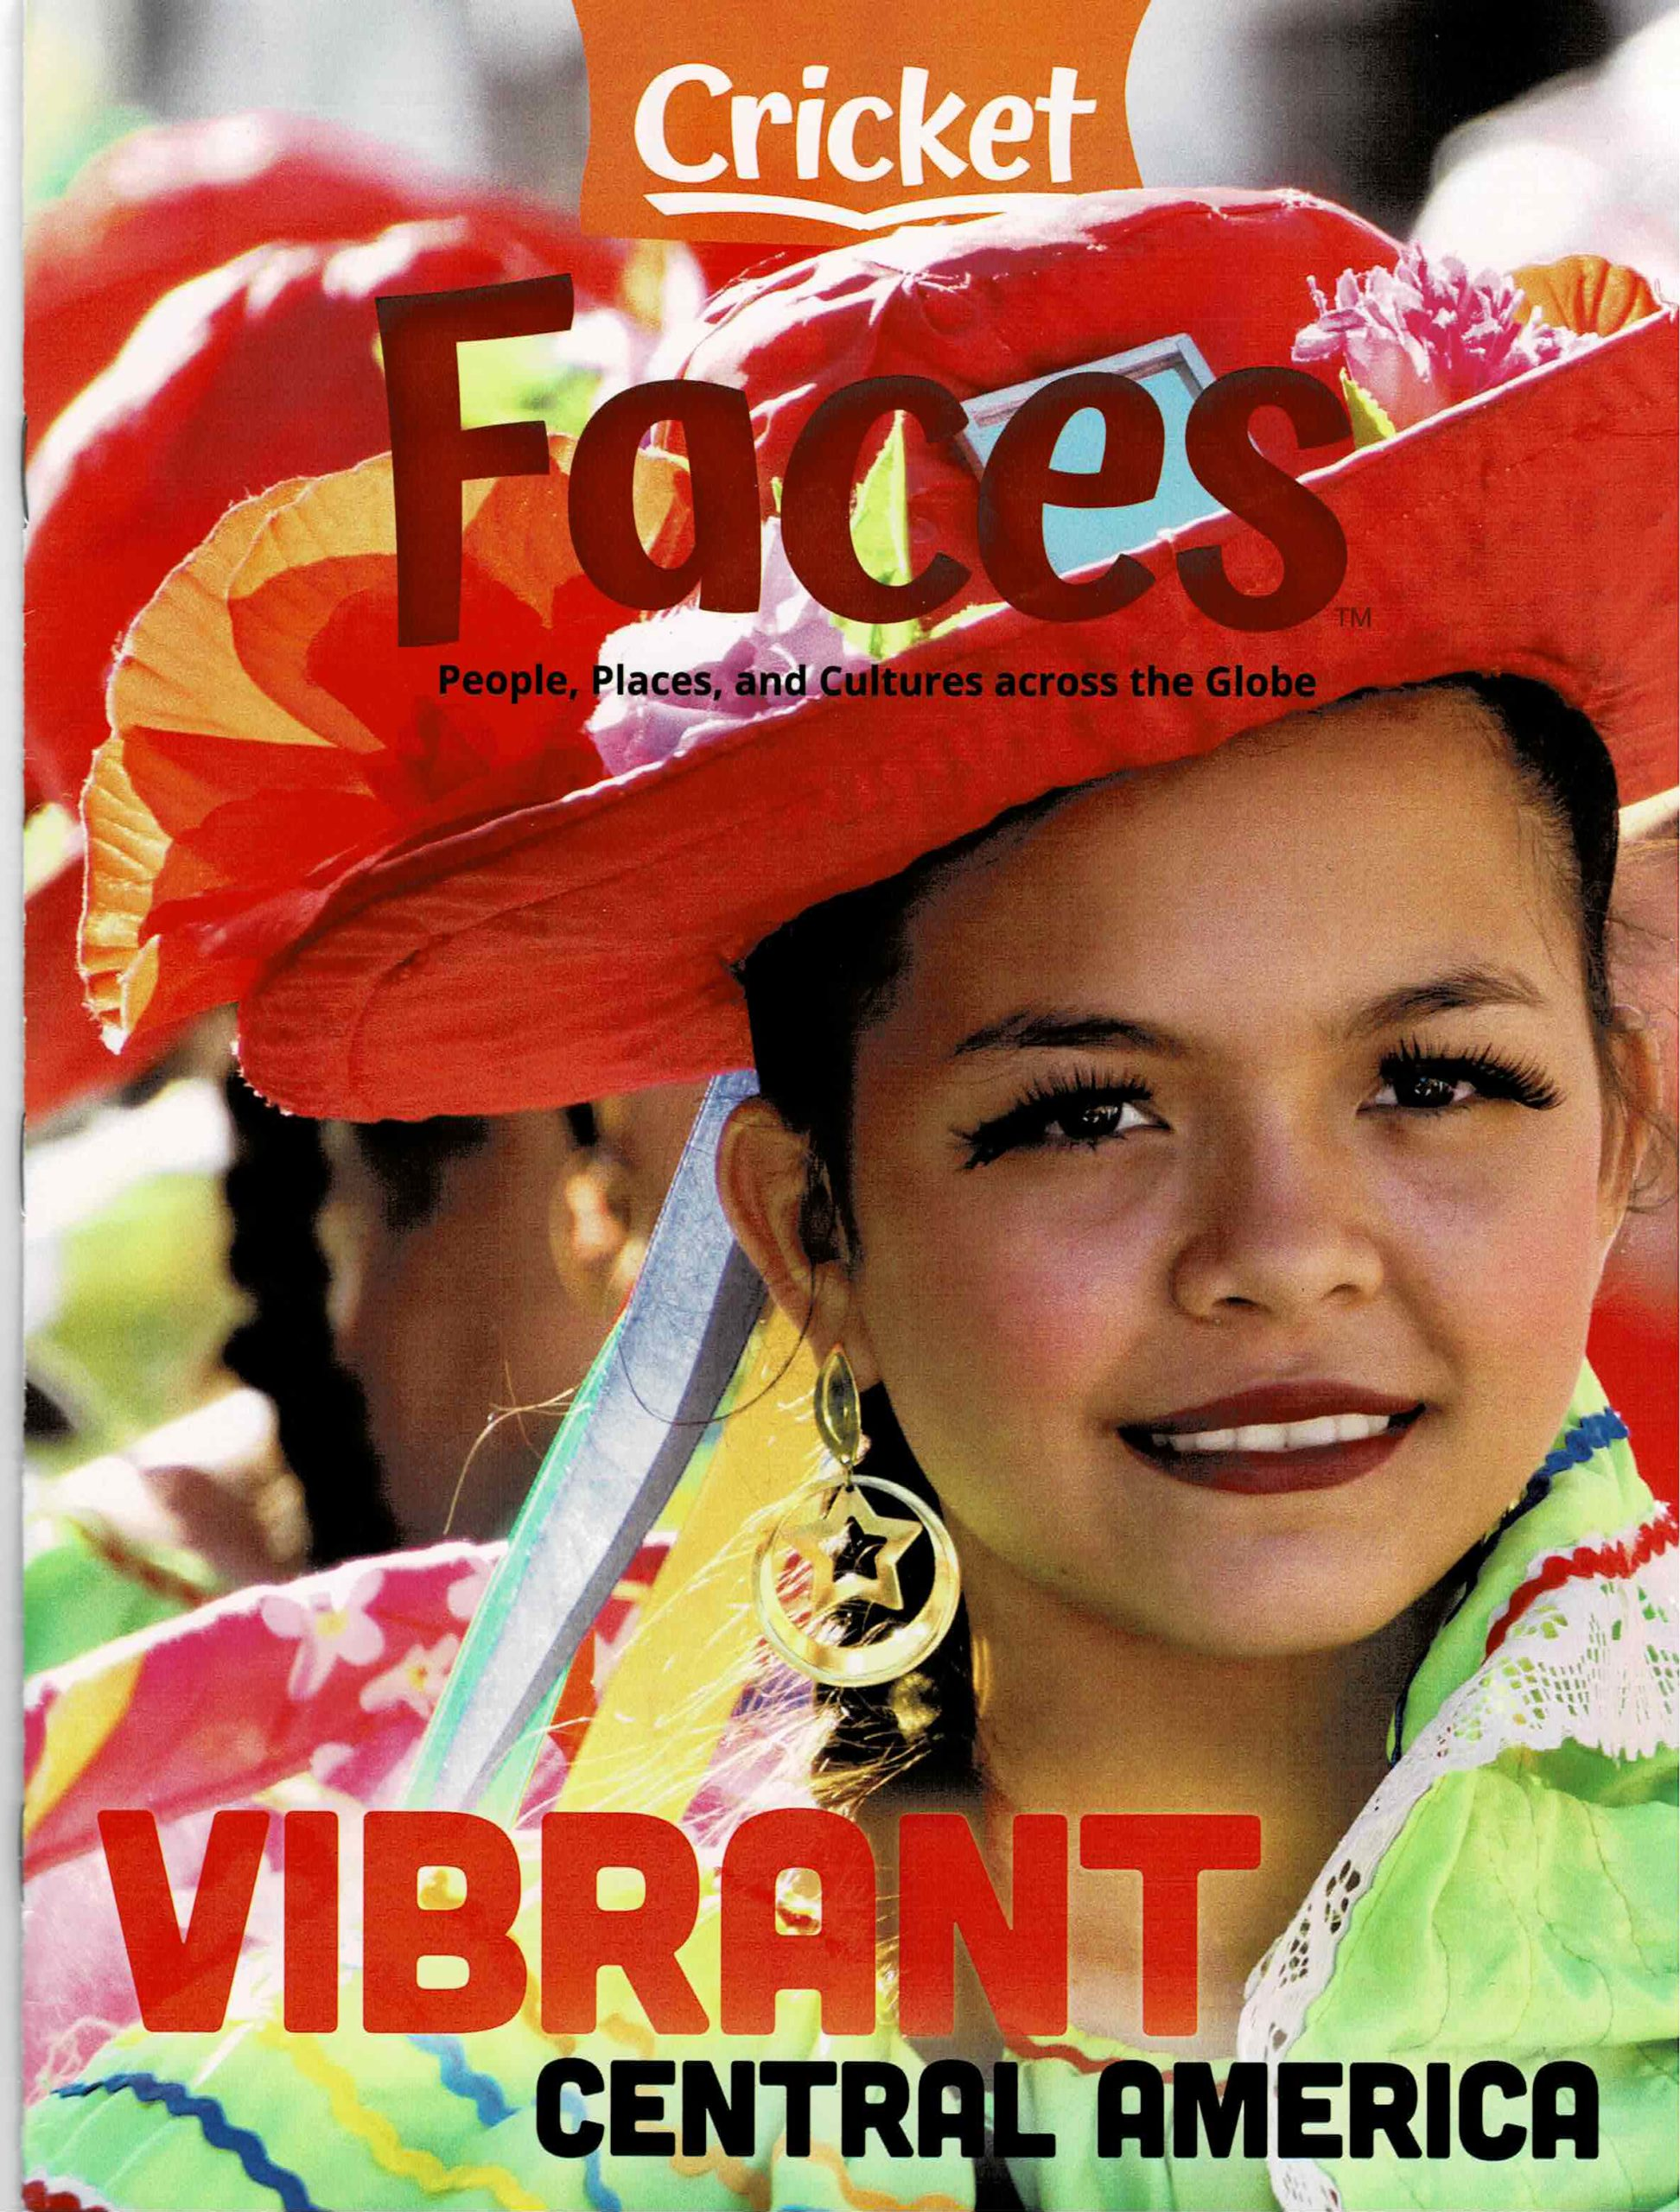 FACES Vibrant Central America Jan. 2020 Copyright Cricket Media